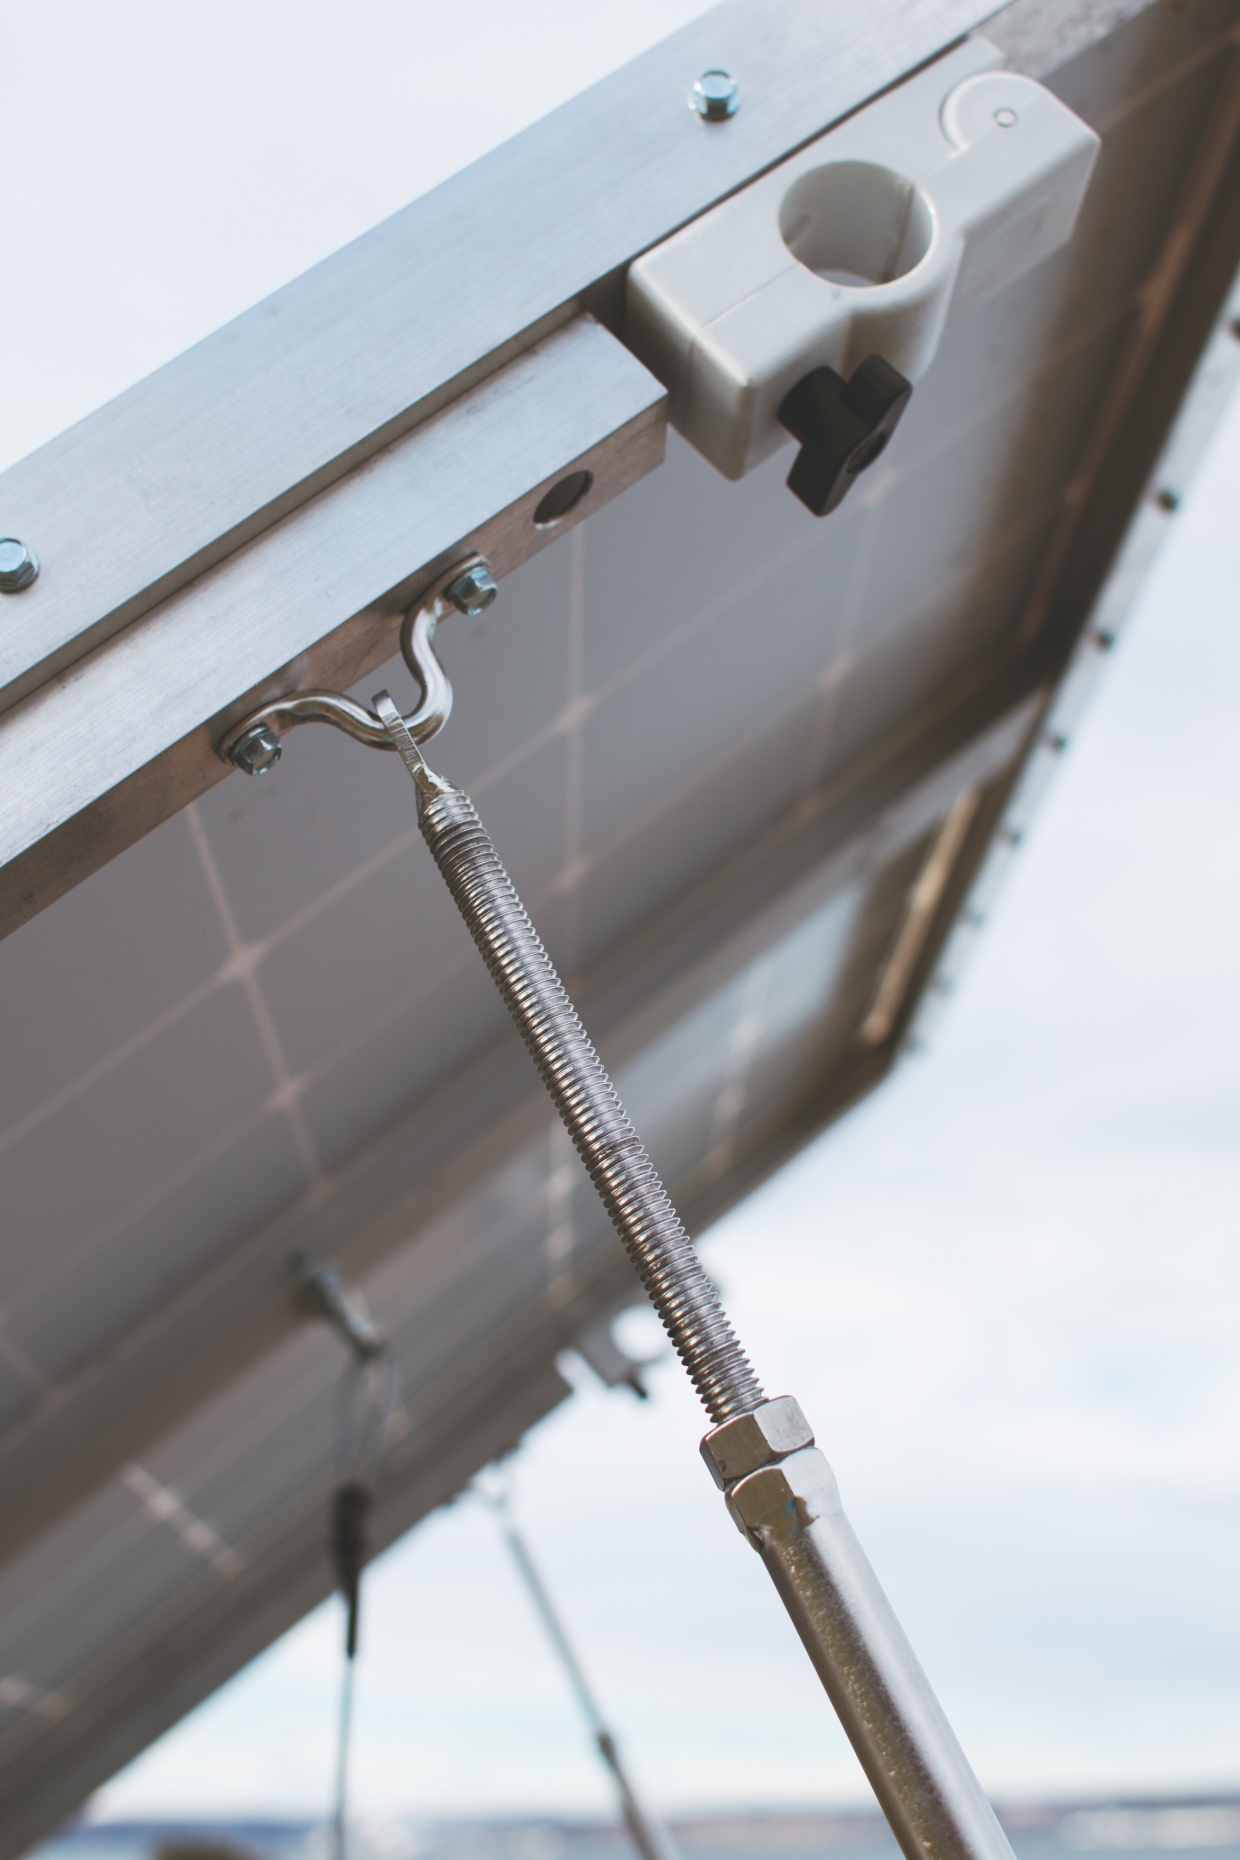 The white clip in this photo is the locking mechanism for the system. When the black toggle is screwed out, the lock opens and can be clamped over the cross beams on the roof rack.